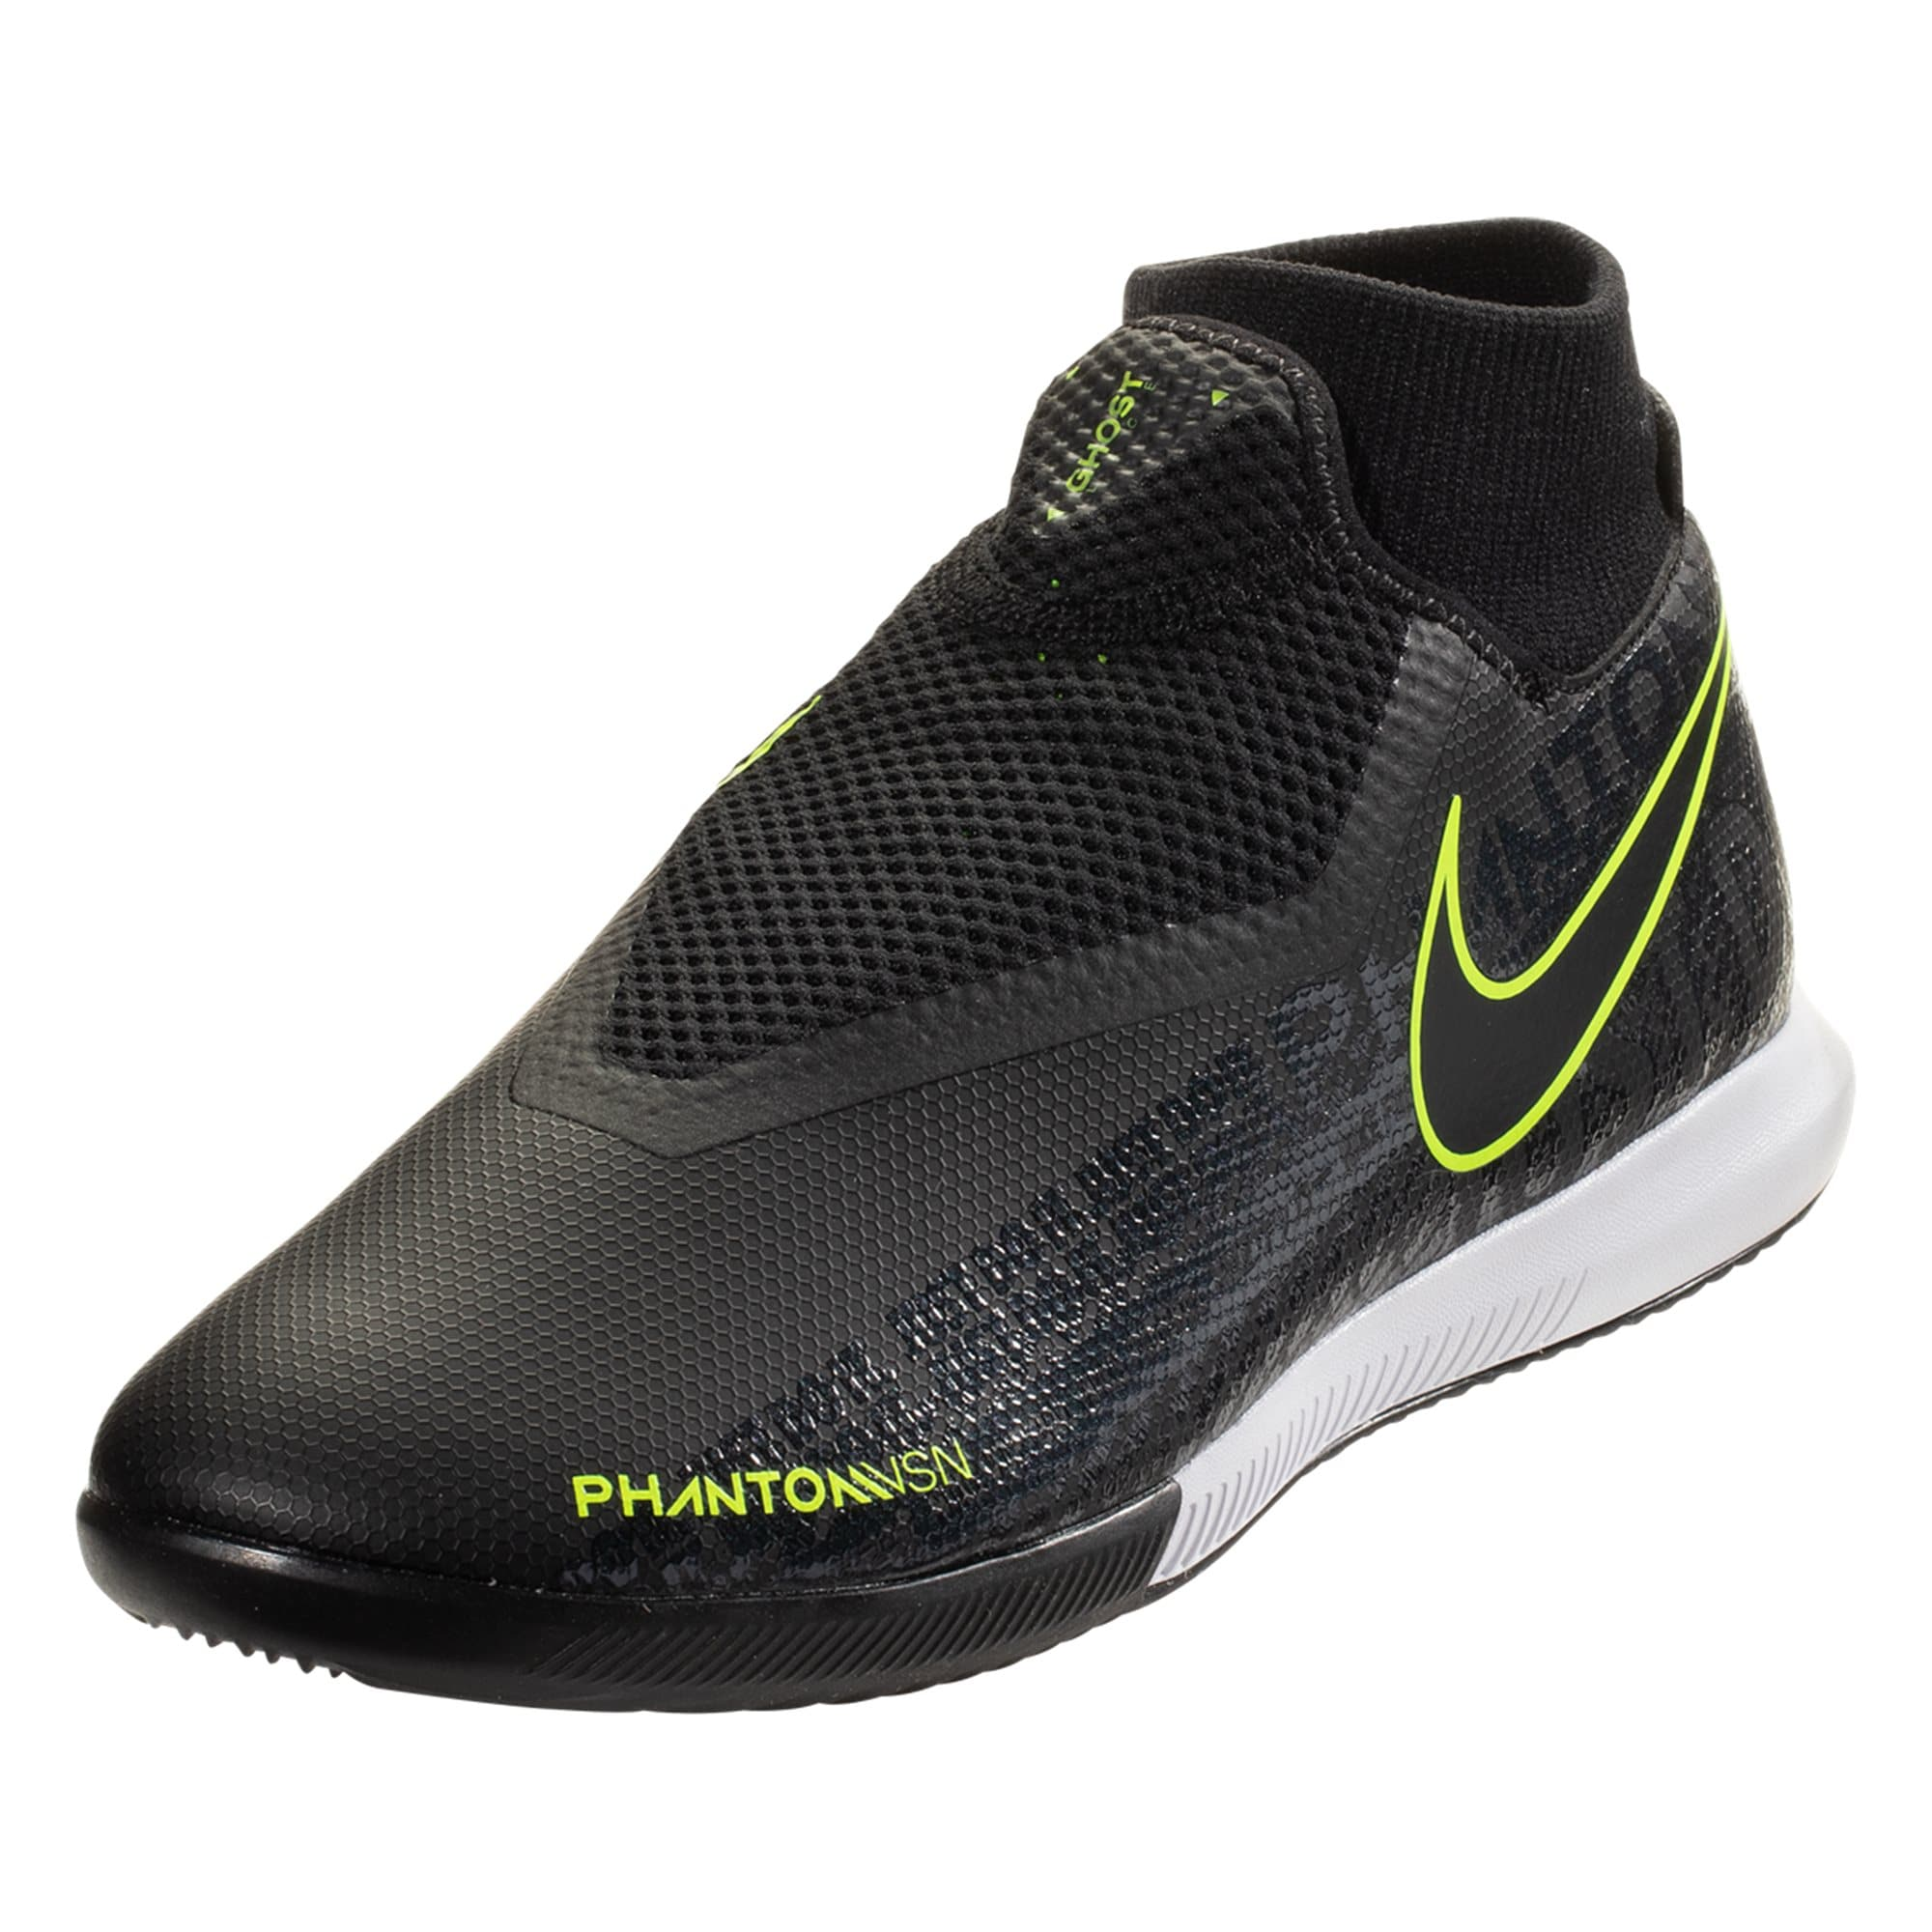 Nike Phantom Vision Academy DF IC Indoor Soccer Shoe - Black/Black/Volt